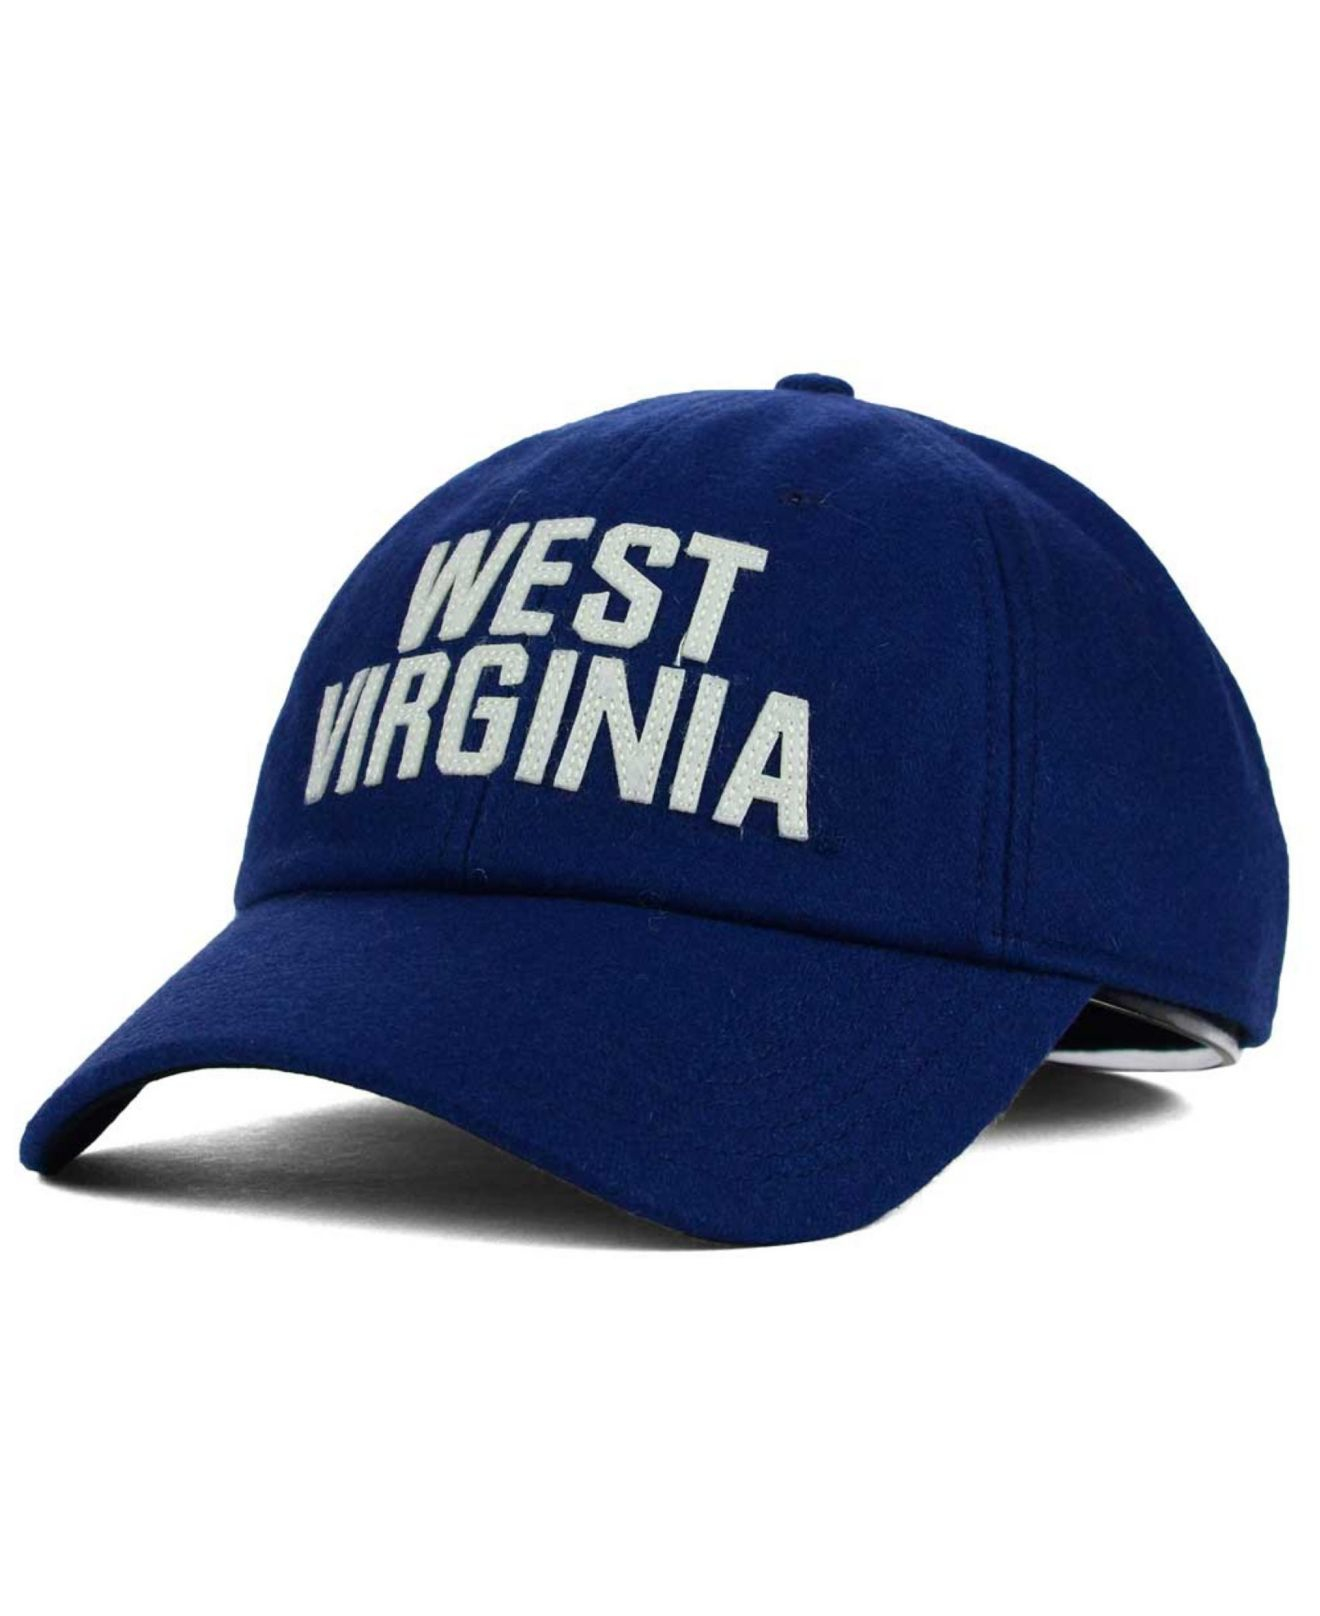 957f945ad5b Lyst - Nike West Virginia Mountaineers H86 Fitted Cap in Blue for Men